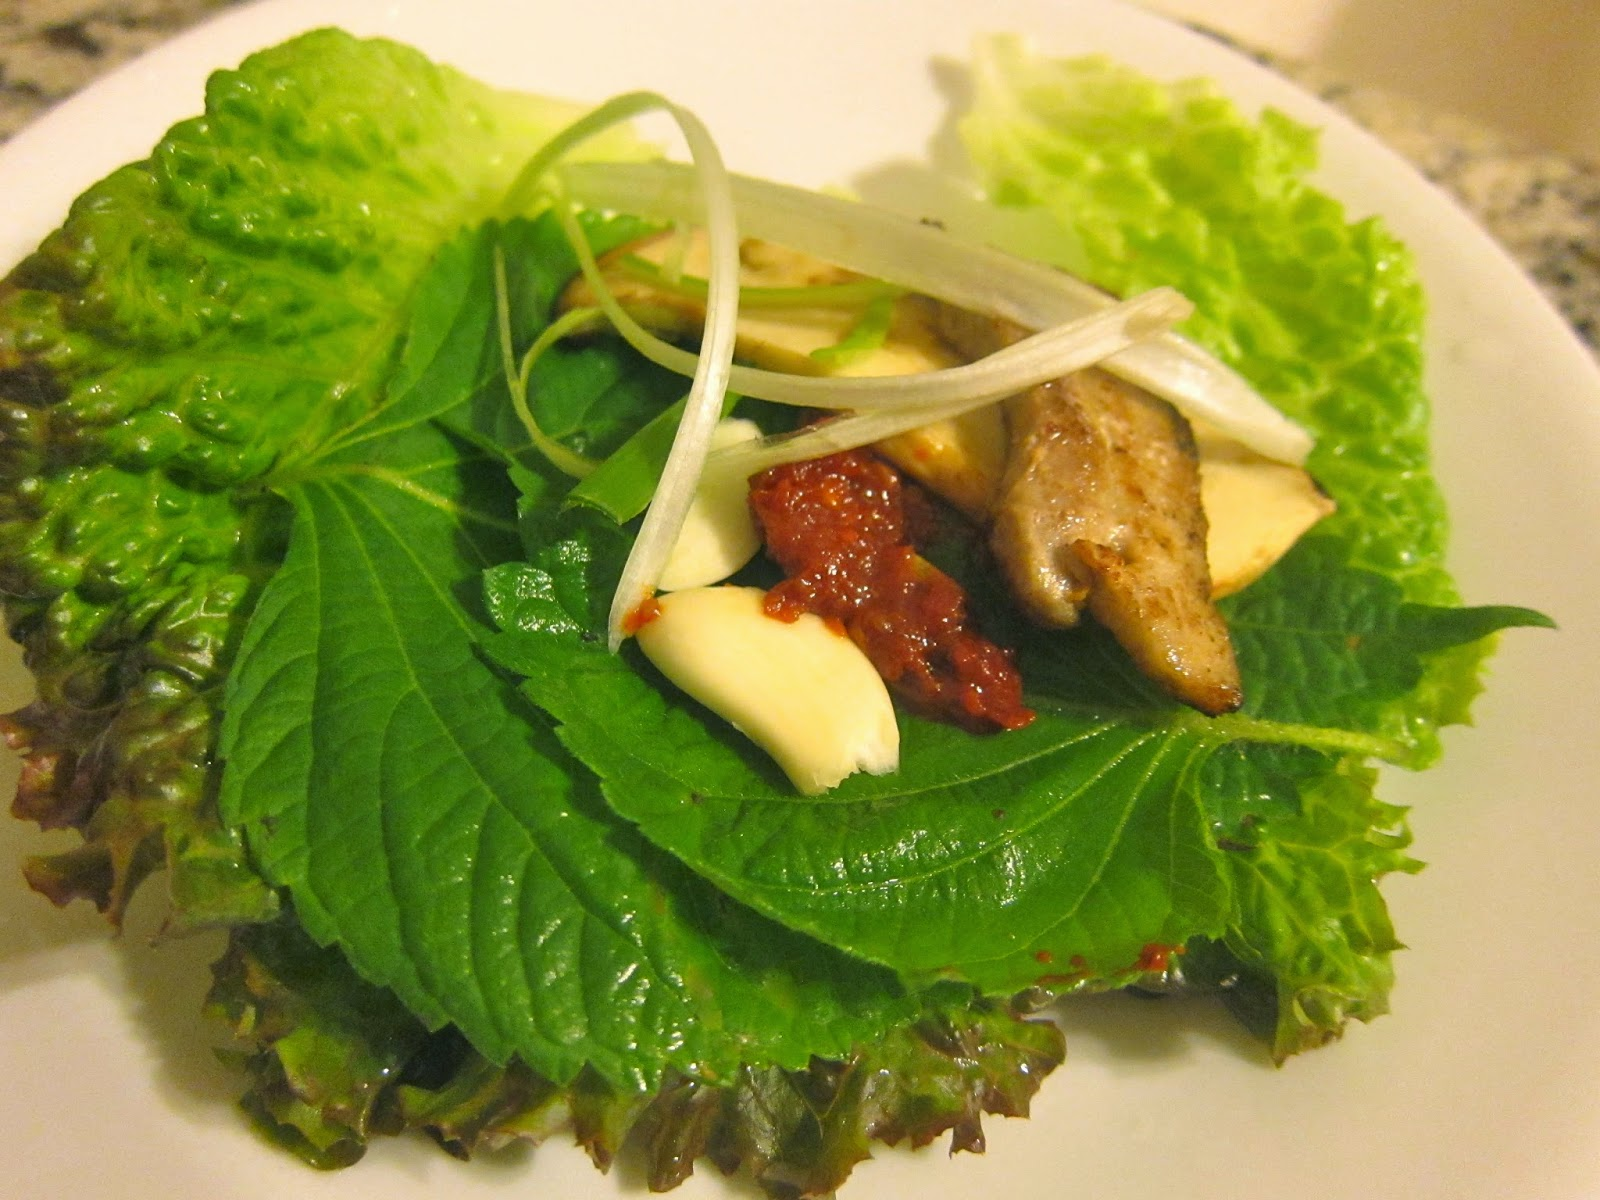 Grilled pork belly with Korean kochu jang, dang jang, perilla leaves and red leaf lettuce